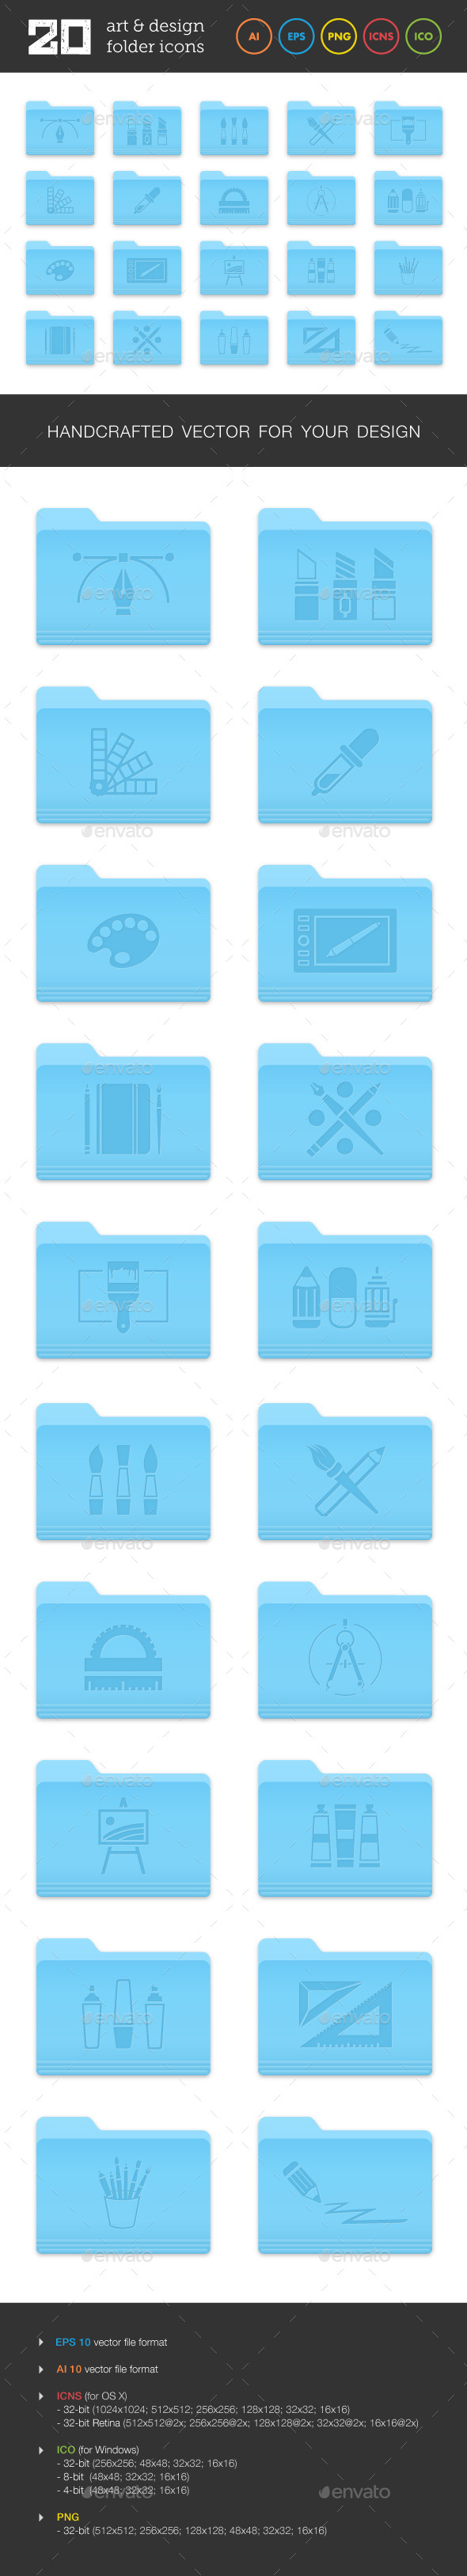 Art and Design Folder Icons Set 1